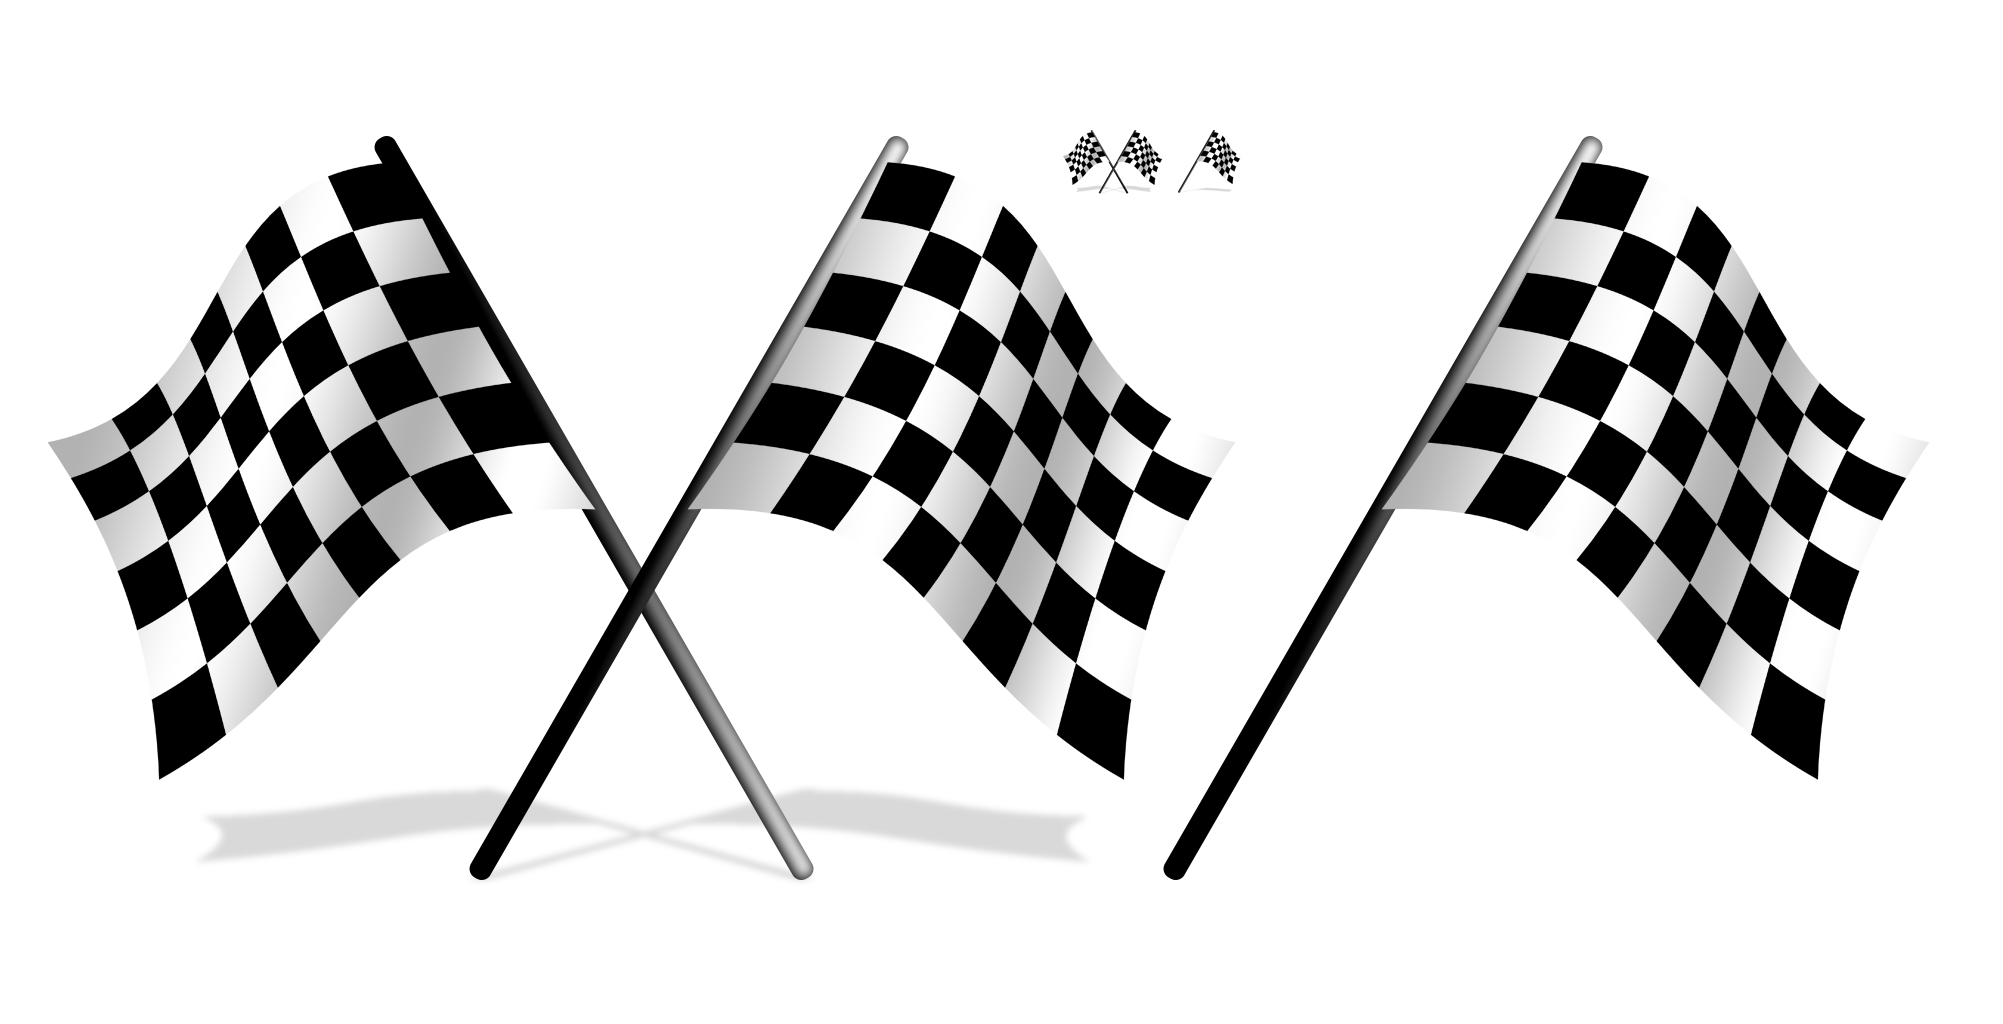 Race car flags clipart clipart freeuse library Draughts Check Drapeau xc3xa0 damier Racing flags Clip art - Black ... clipart freeuse library